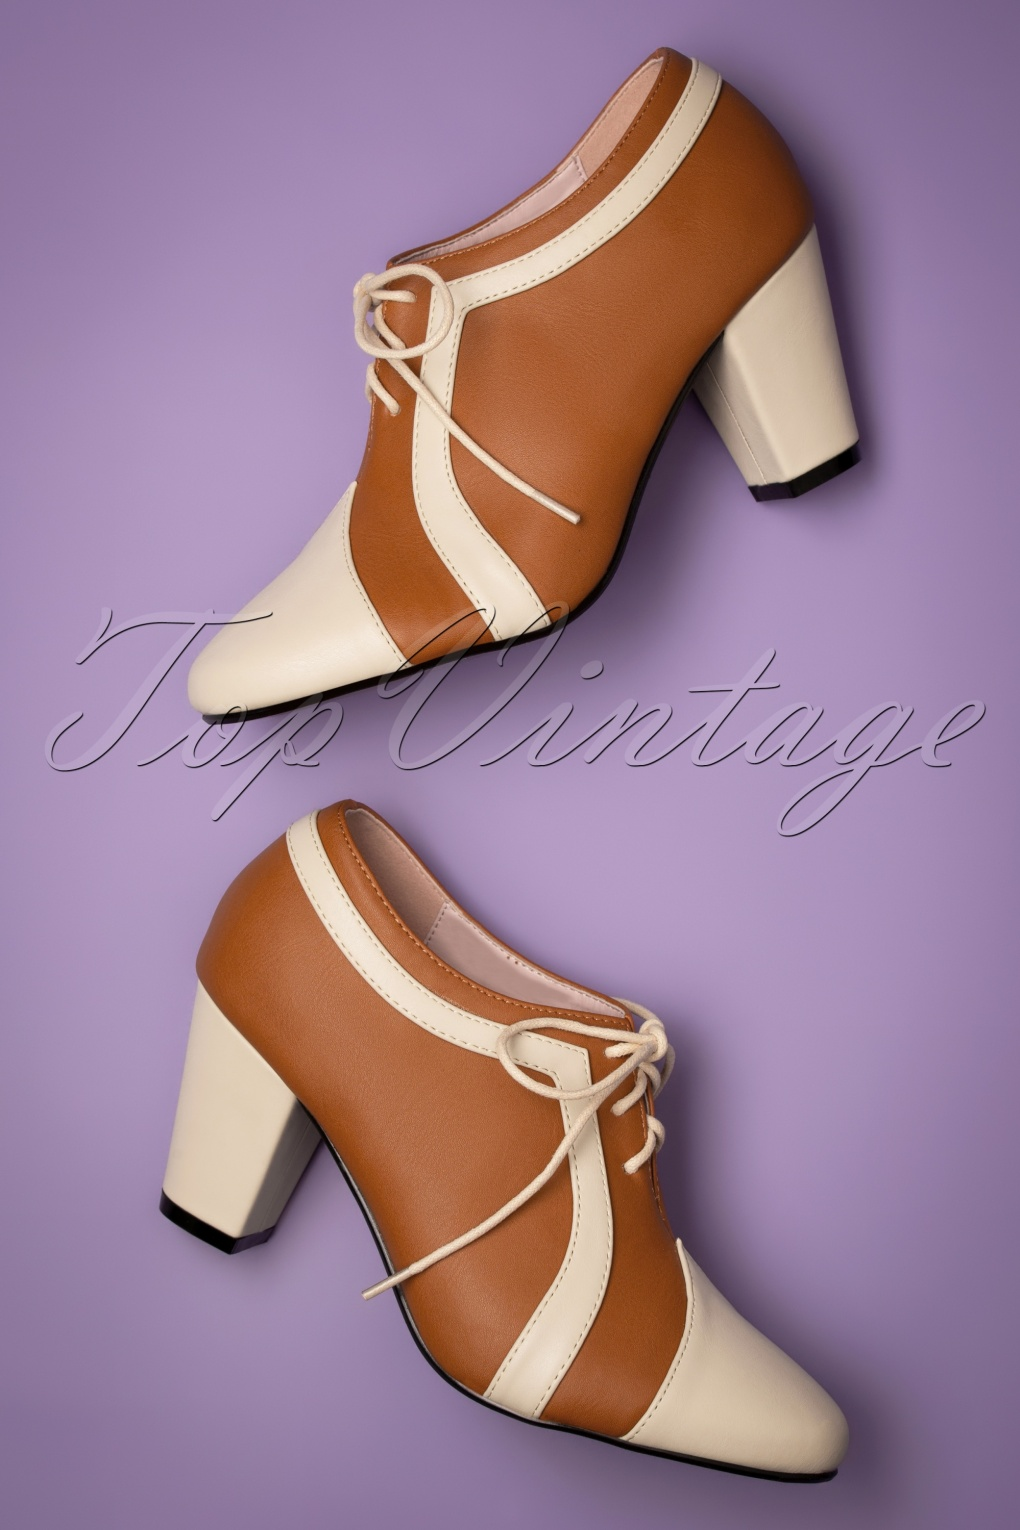 Vintage Shoes, Vintage Style Shoes 40s Amelia Shoe Booties in Cognac and Cream £51.58 AT vintagedancer.com